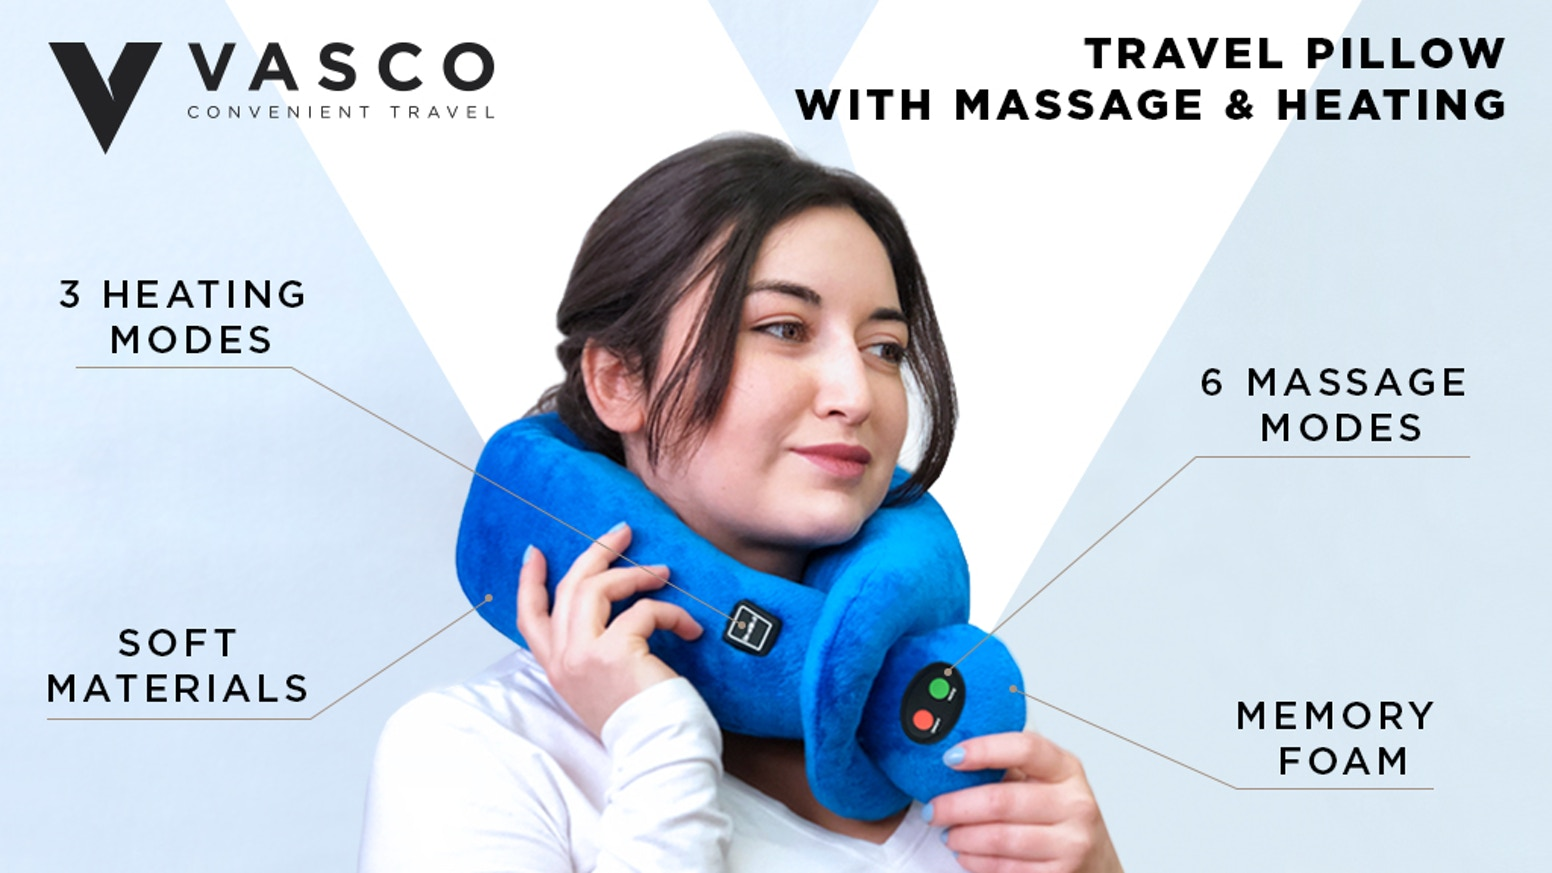 Vasco pillow's memory foam relieves pain in the neck, heating mode & massage system improves blood circulation and helps to fall asleep